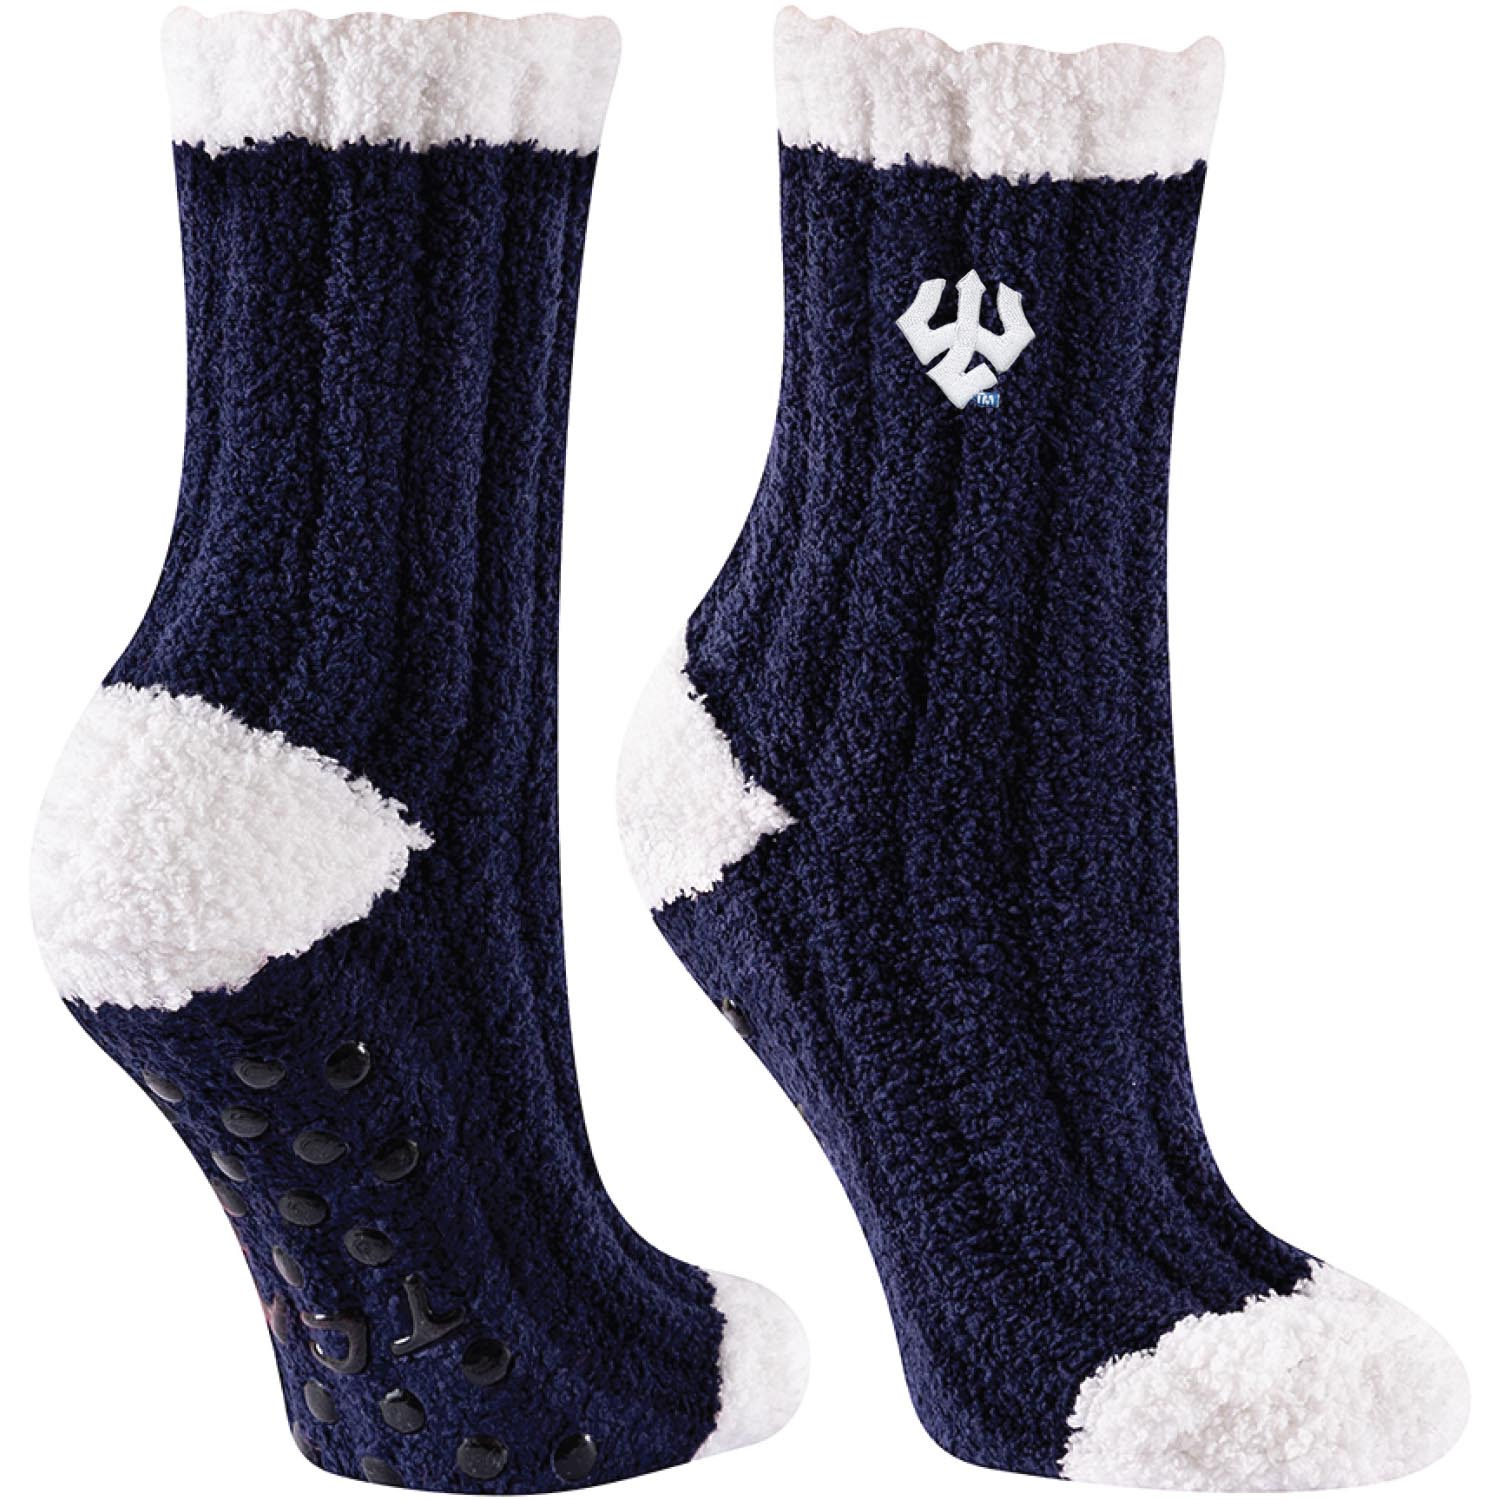 Image For Fuzzy Socks, Navy or Royal